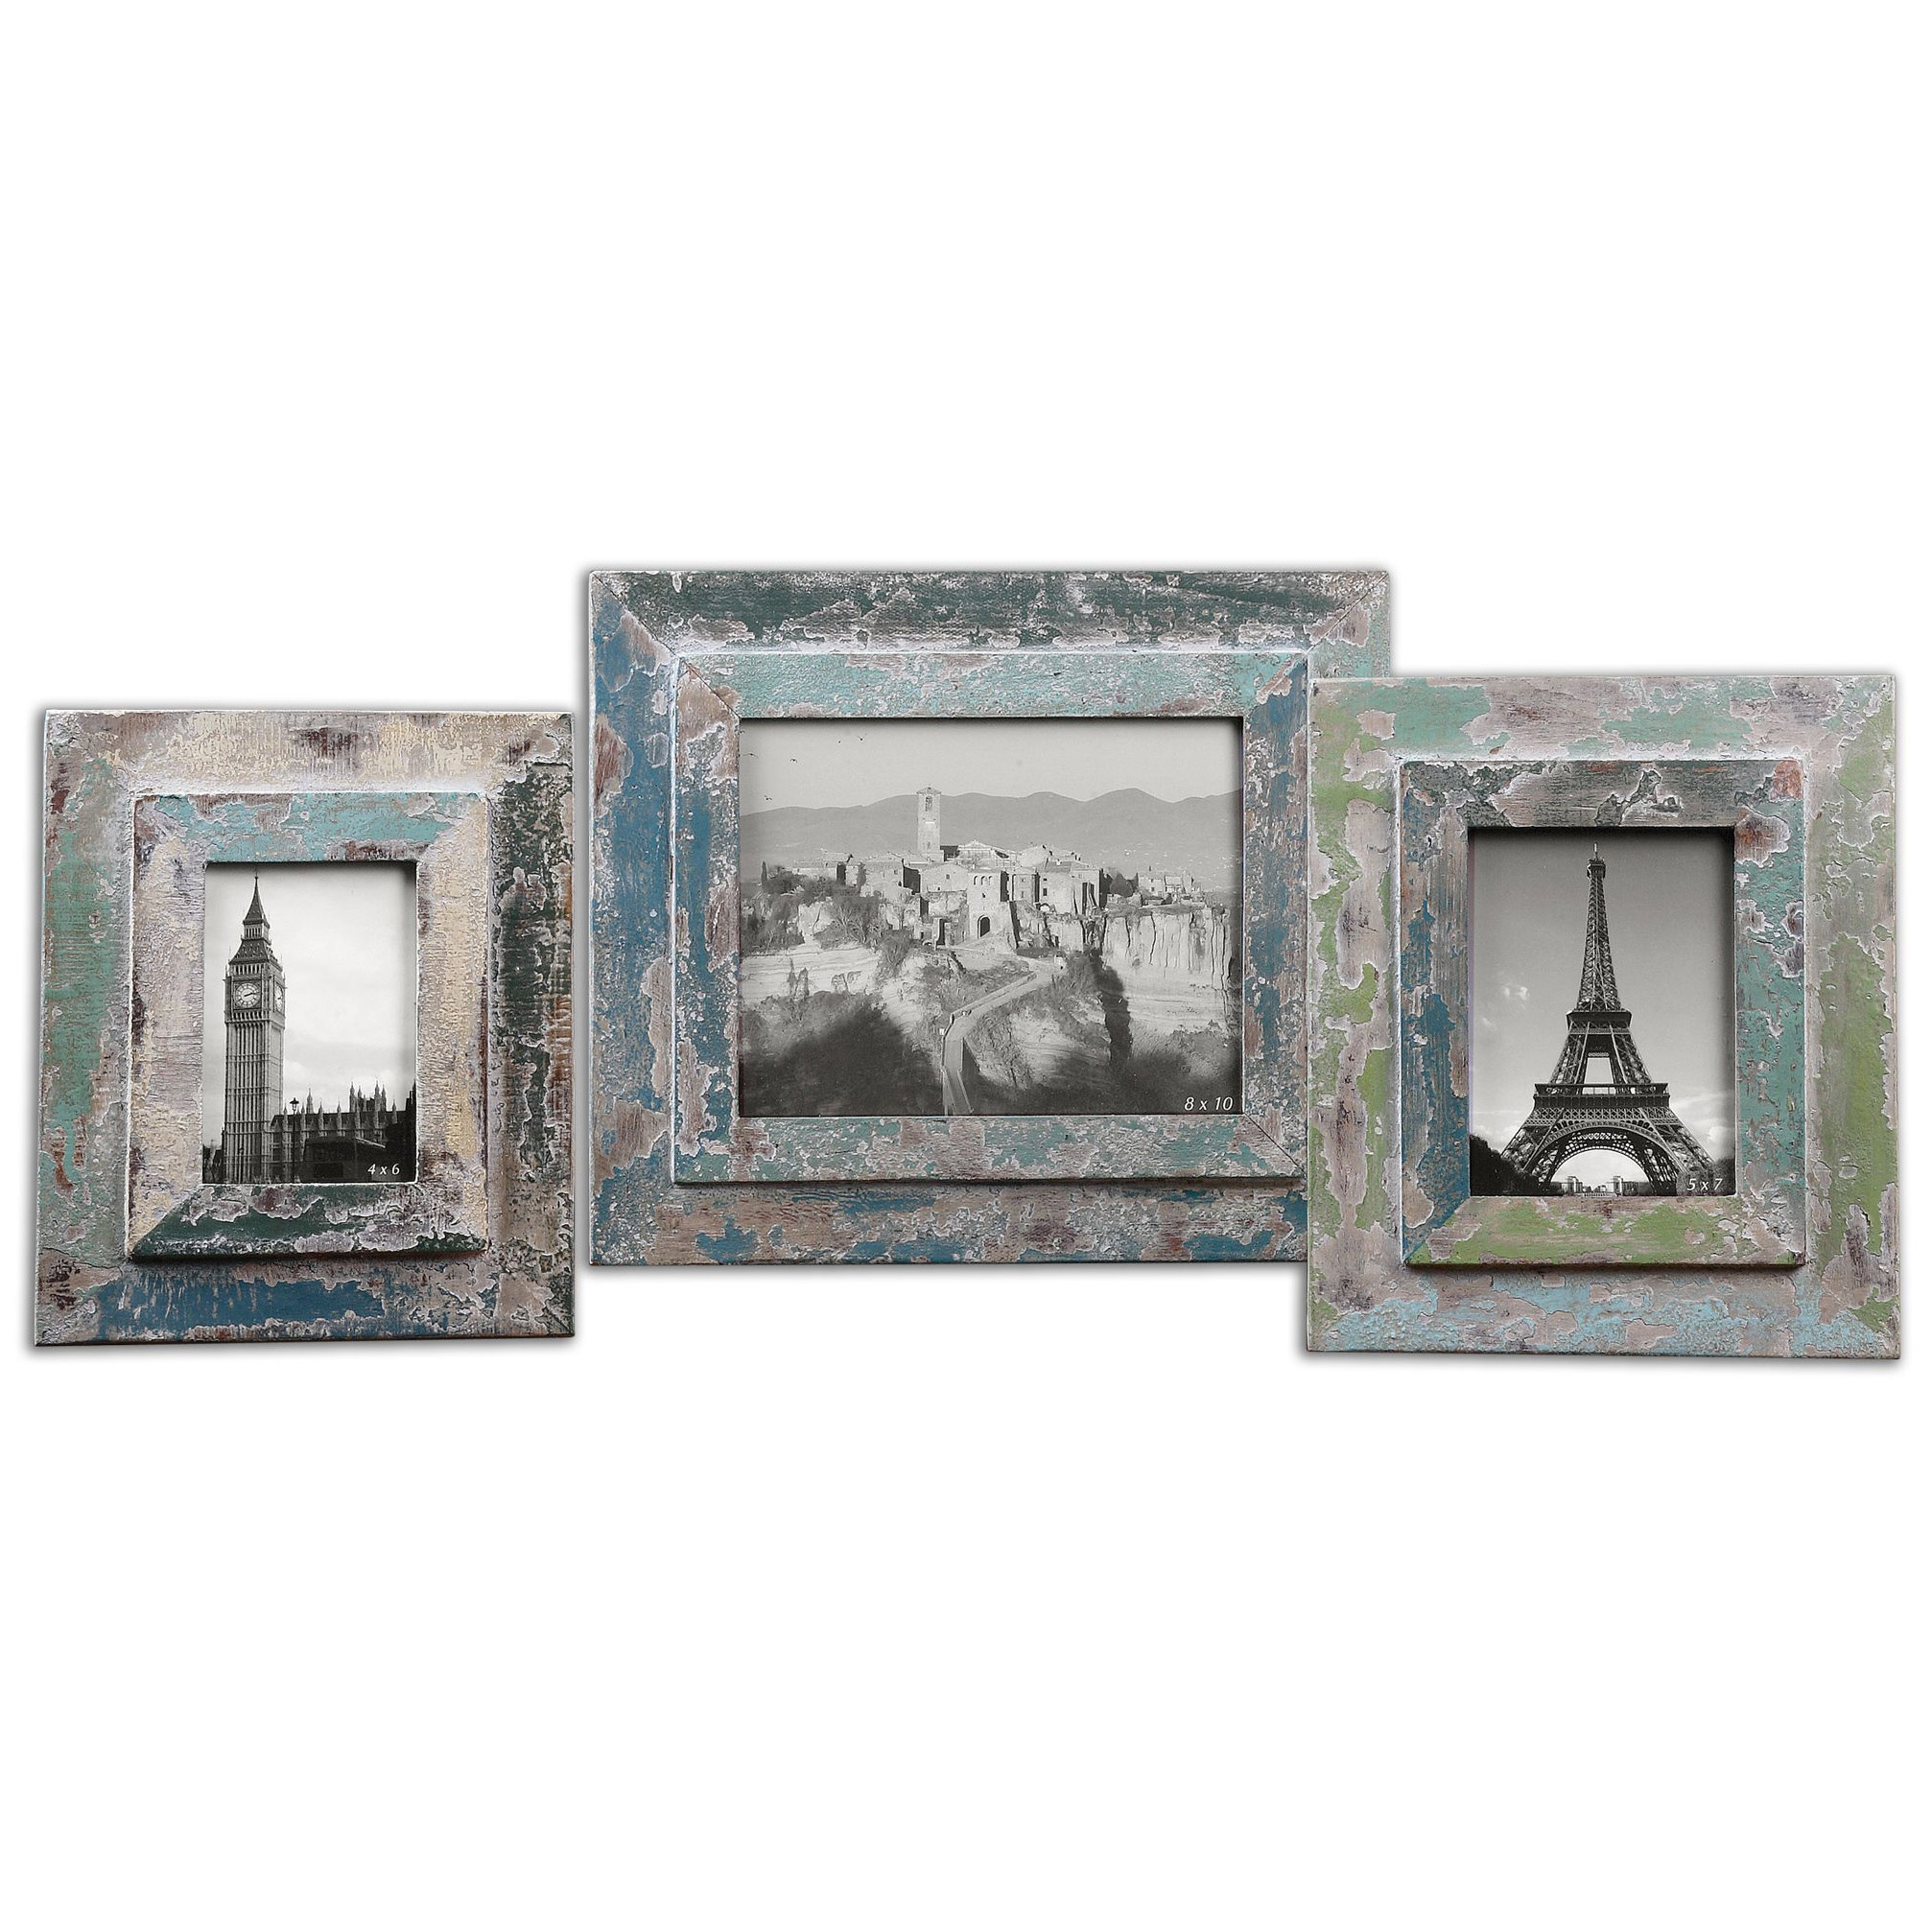 Designer photo frames eclectic photo frames kathy kuo home gracen global bazaar rustic blue photo frames set of 3 jeuxipadfo Image collections